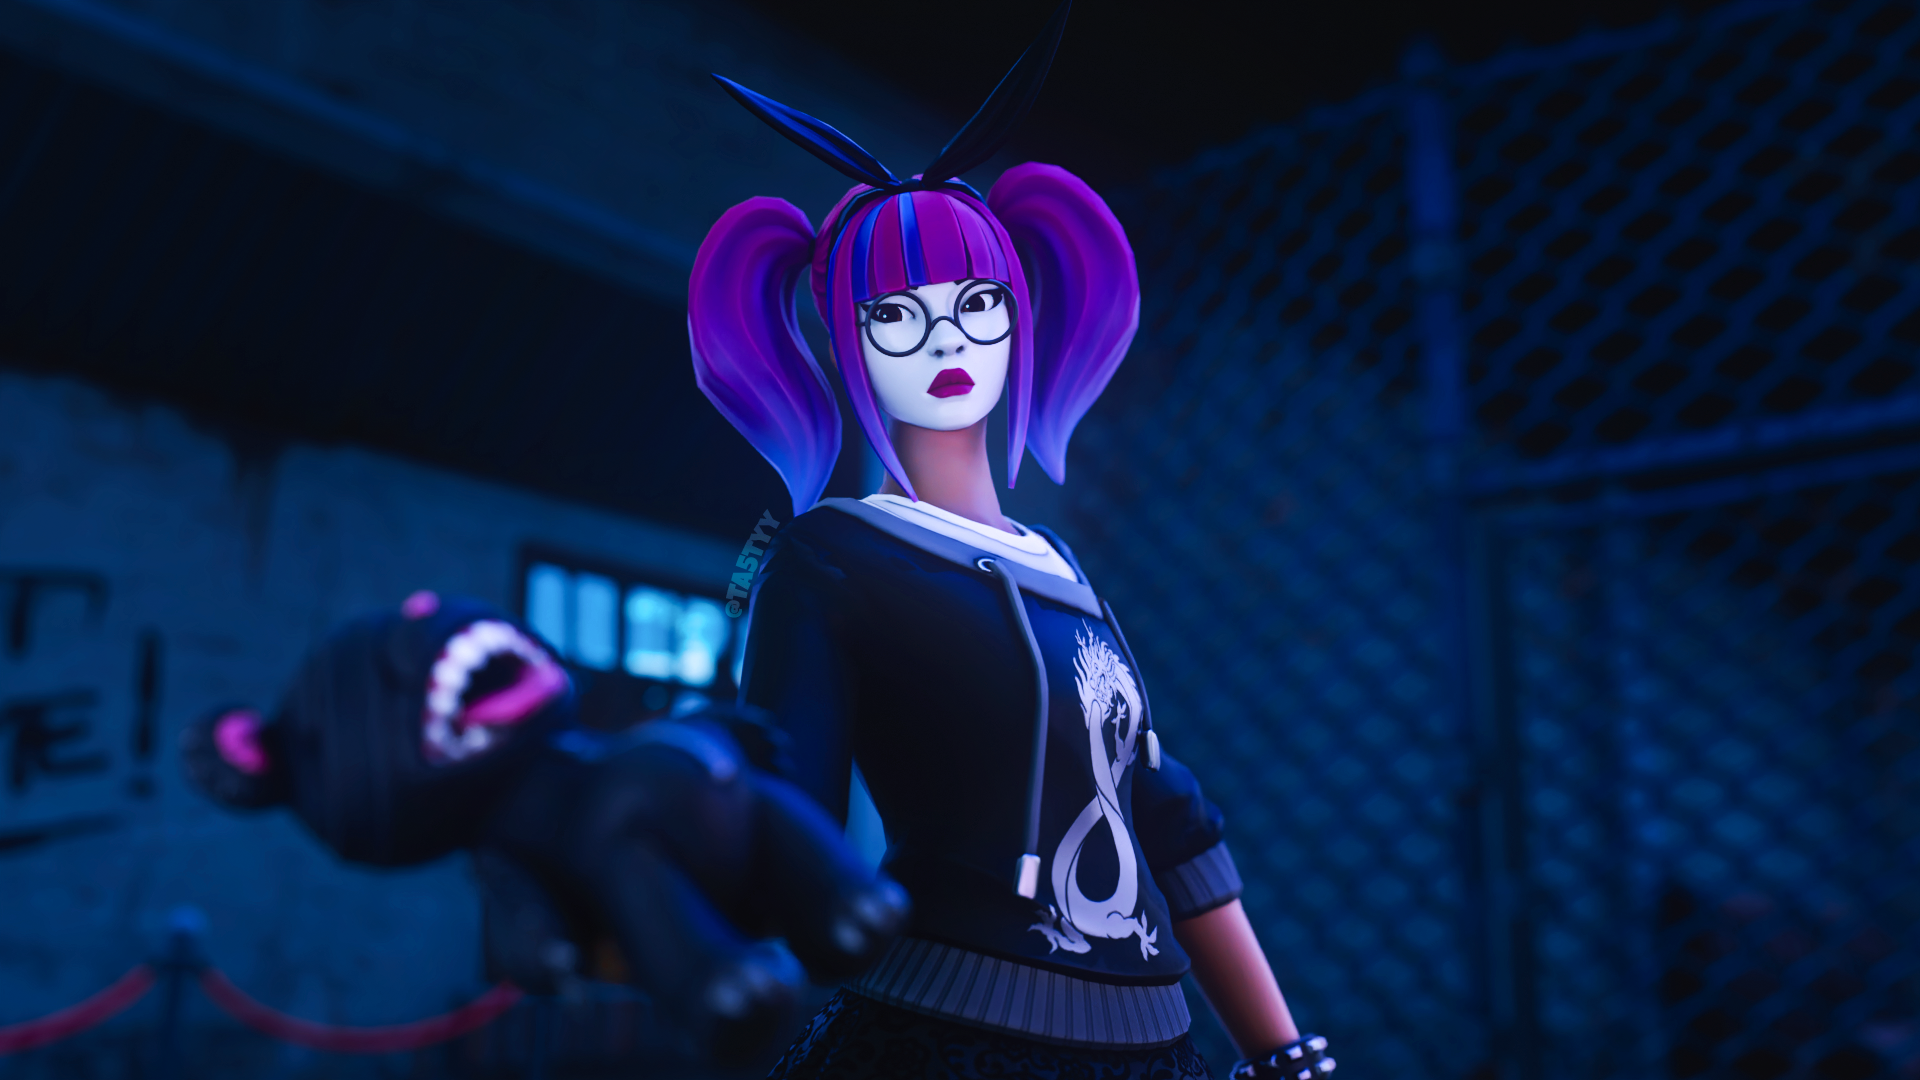 Blender] Lace FortNiteBR 1920x1080